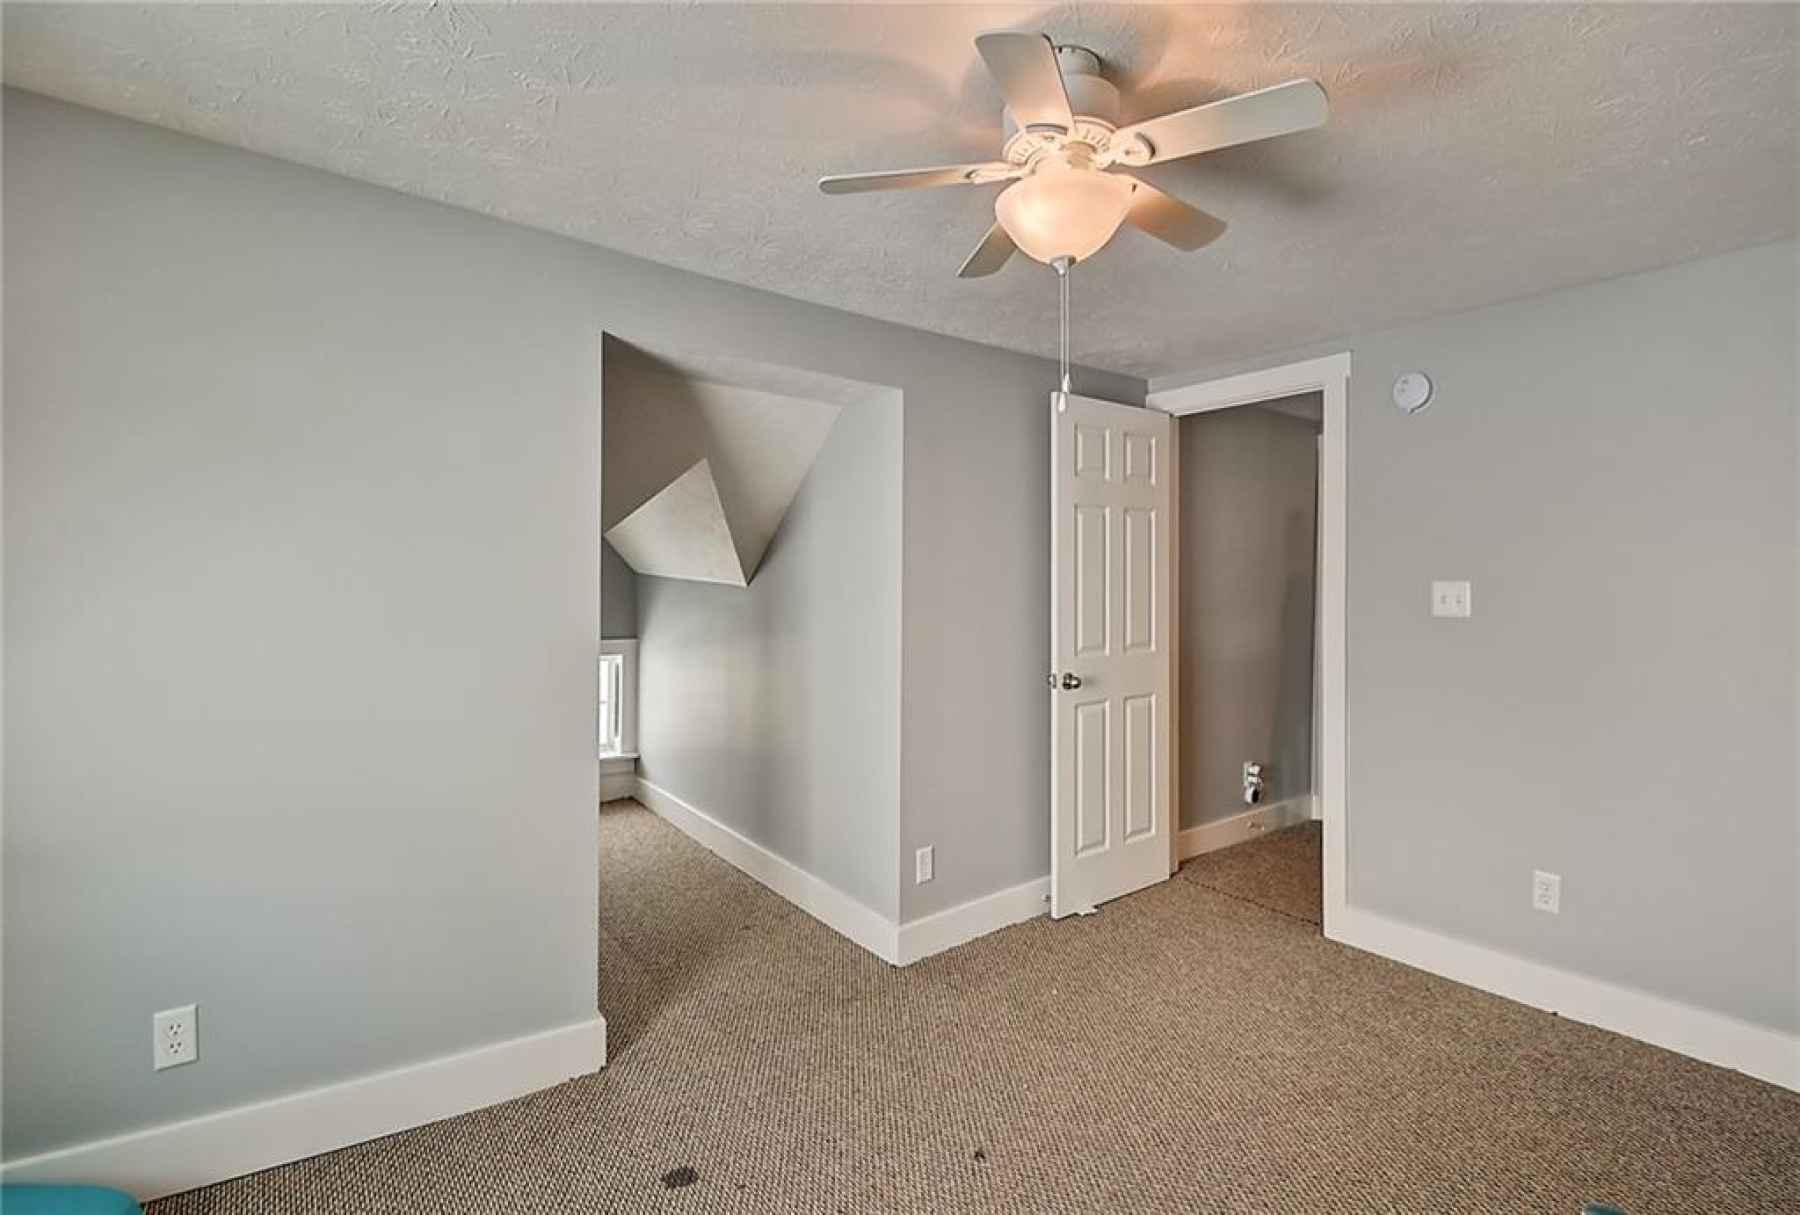 Third floor. Fifth bedroom. Located in the northeast corner of home. Nook in the middle of the pictu